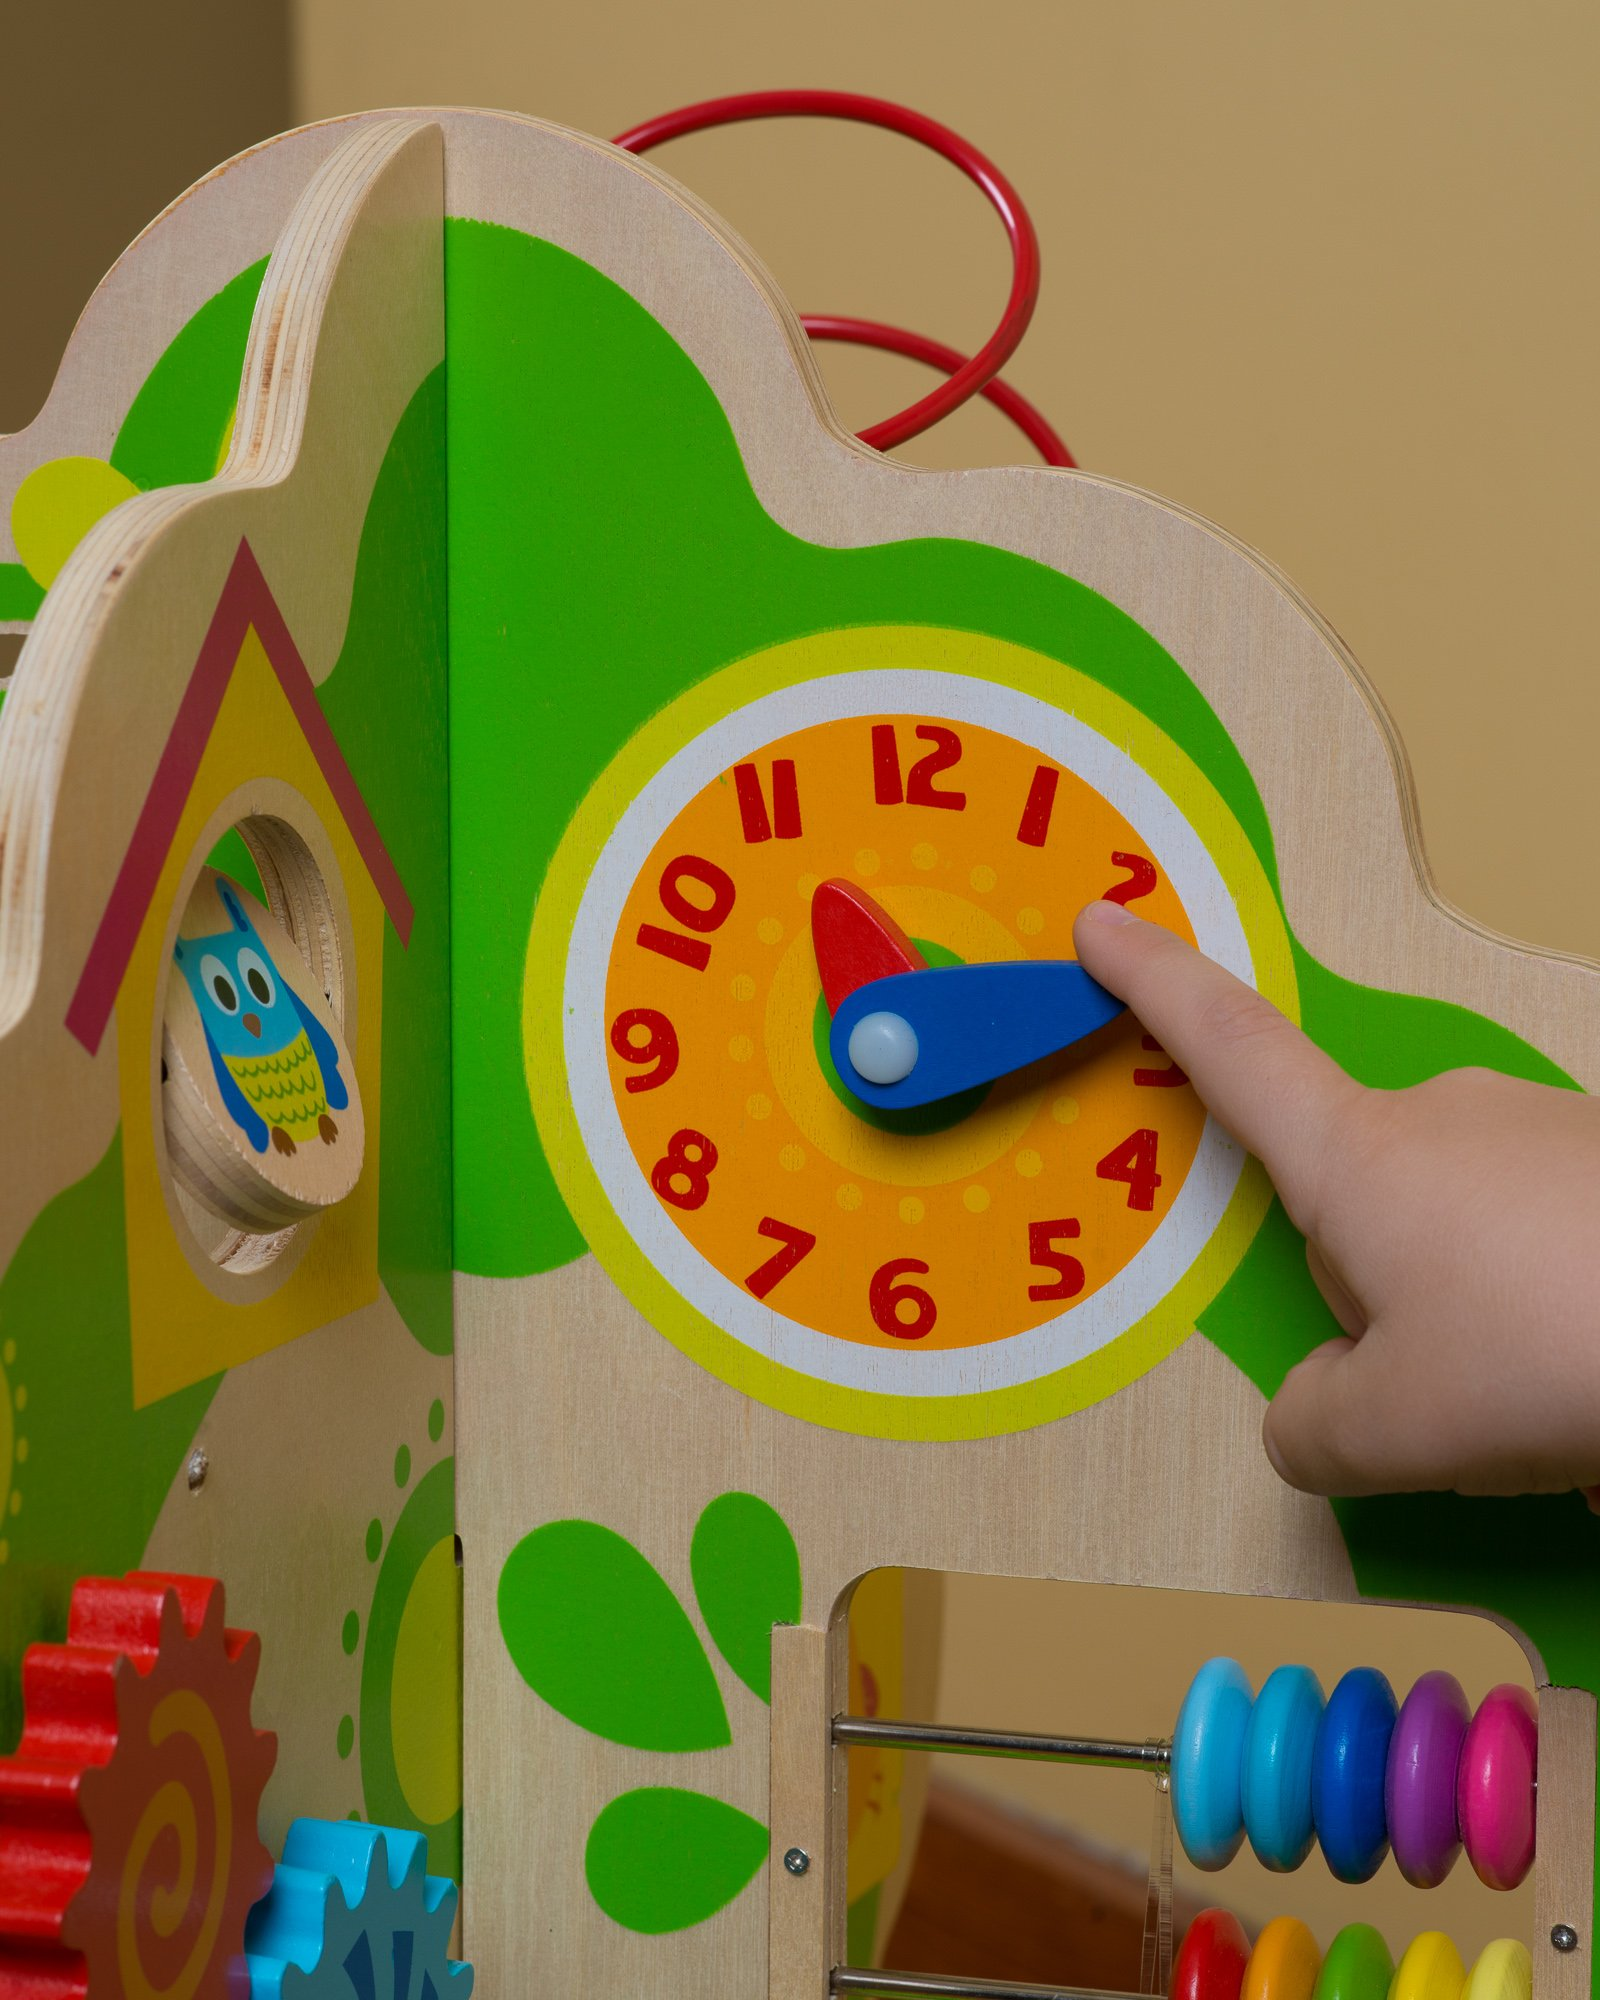 Ray's Toys Deluxe Wooden Activity Tree Center for Toddlers & Kids 1-5 Years –Educational Playstation for Learning Shapes, Colors, Time Telling & Counting –Made of Non-Toxic Wood W/ Water-Based Colors by Ray's Toys (Image #4)